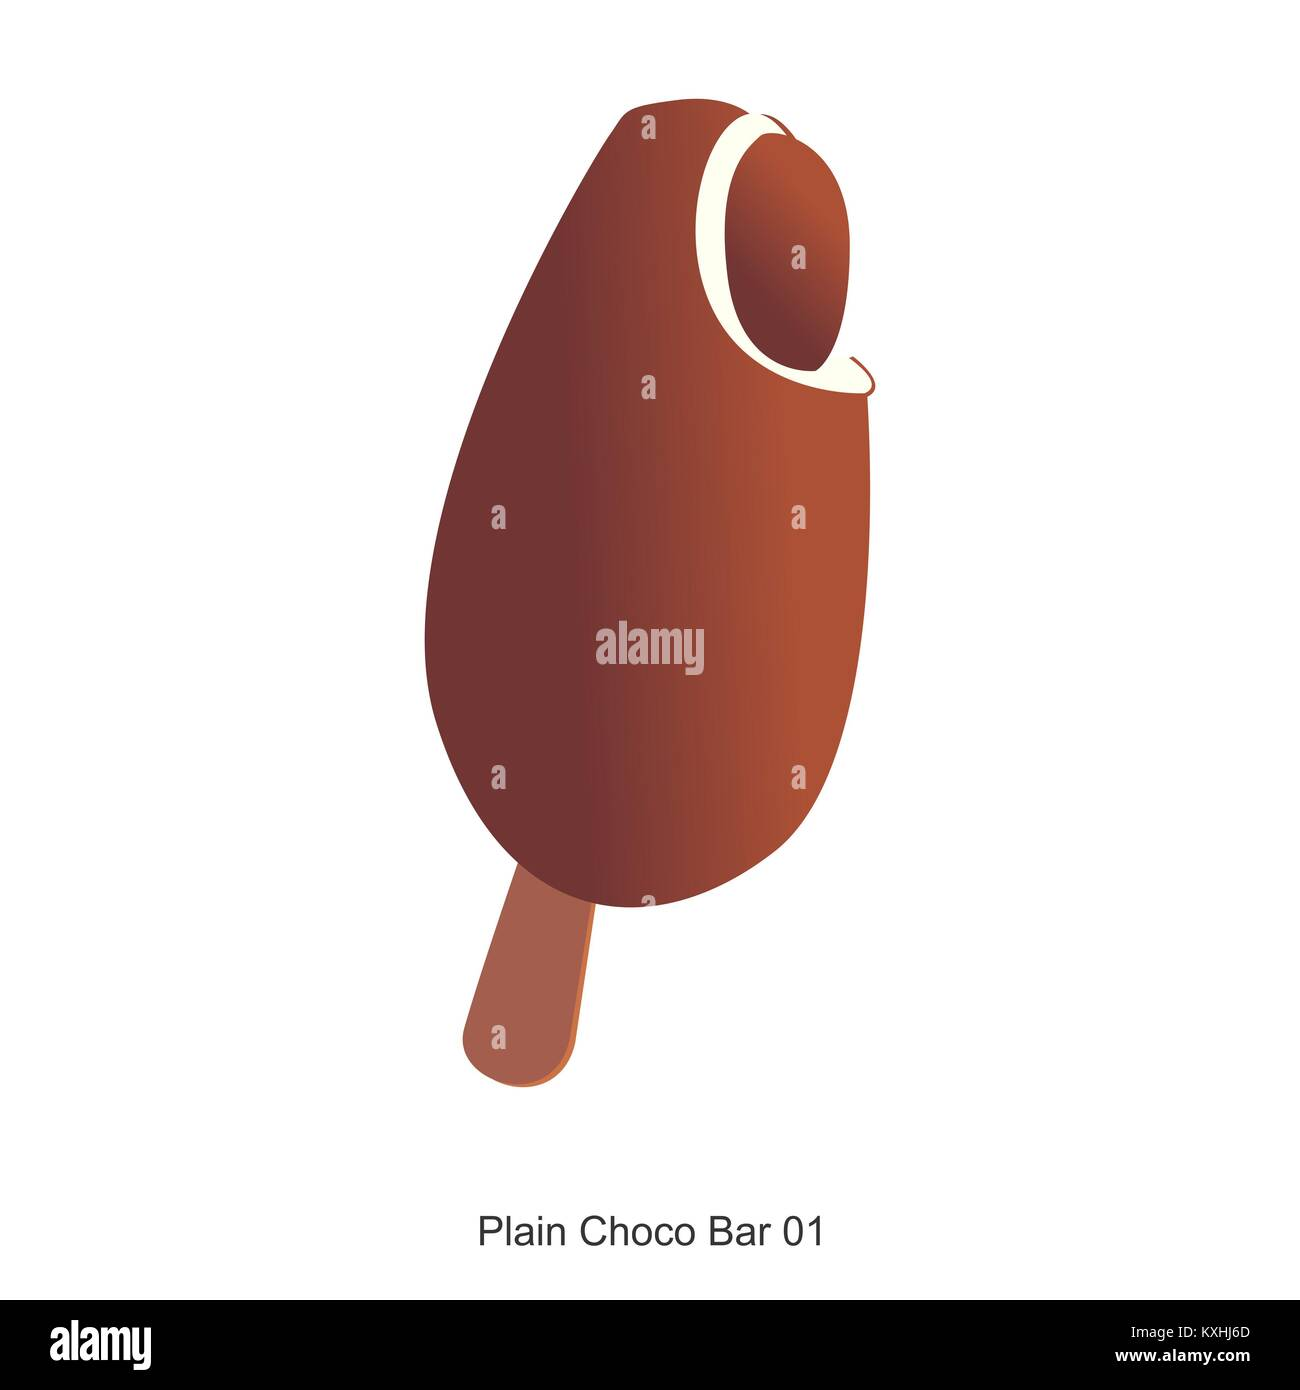 Plain Choco Bar Immagini Stock